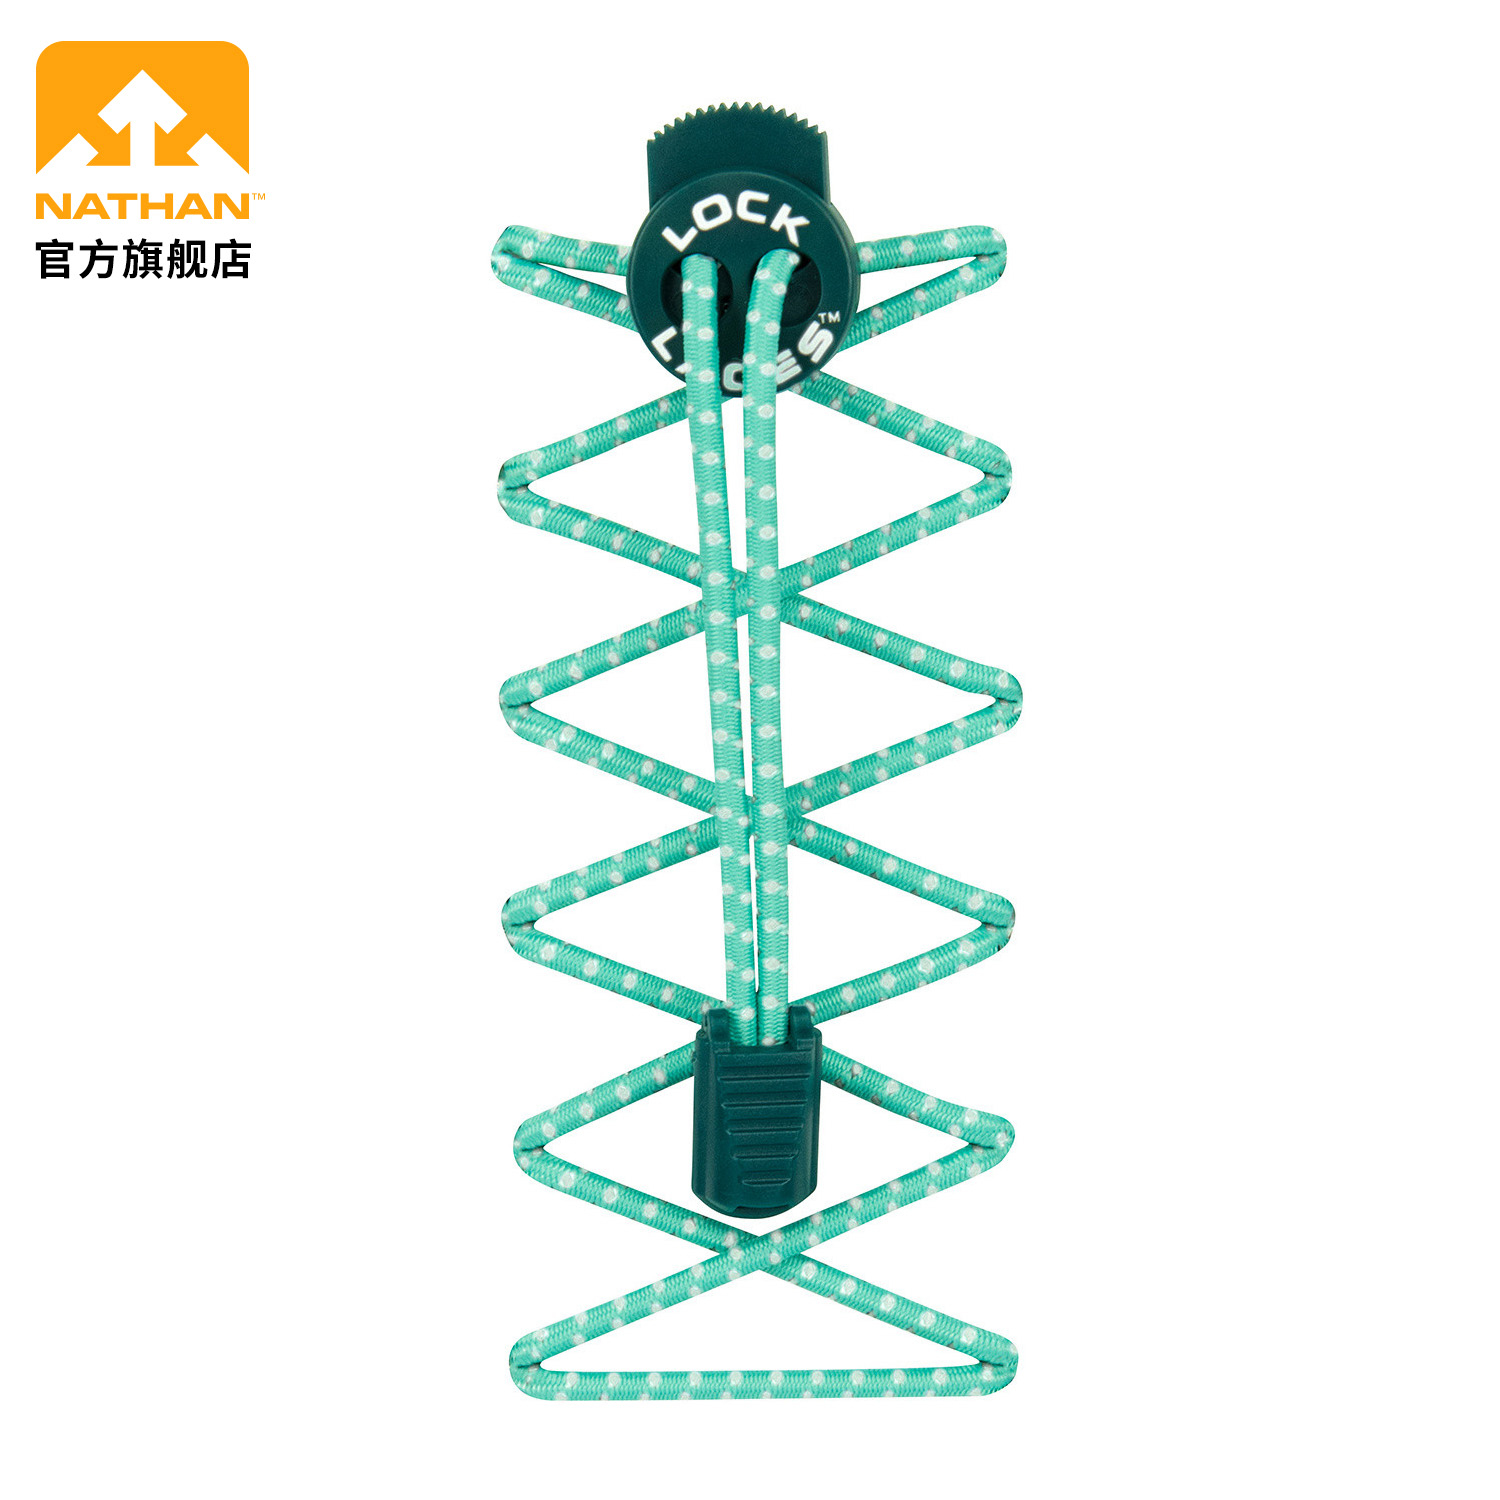 [The goods stop production and no stock][The goods stop production and no stock]Nathan Outdoor Night Running Reflective Self-locking Shoelace 1161N